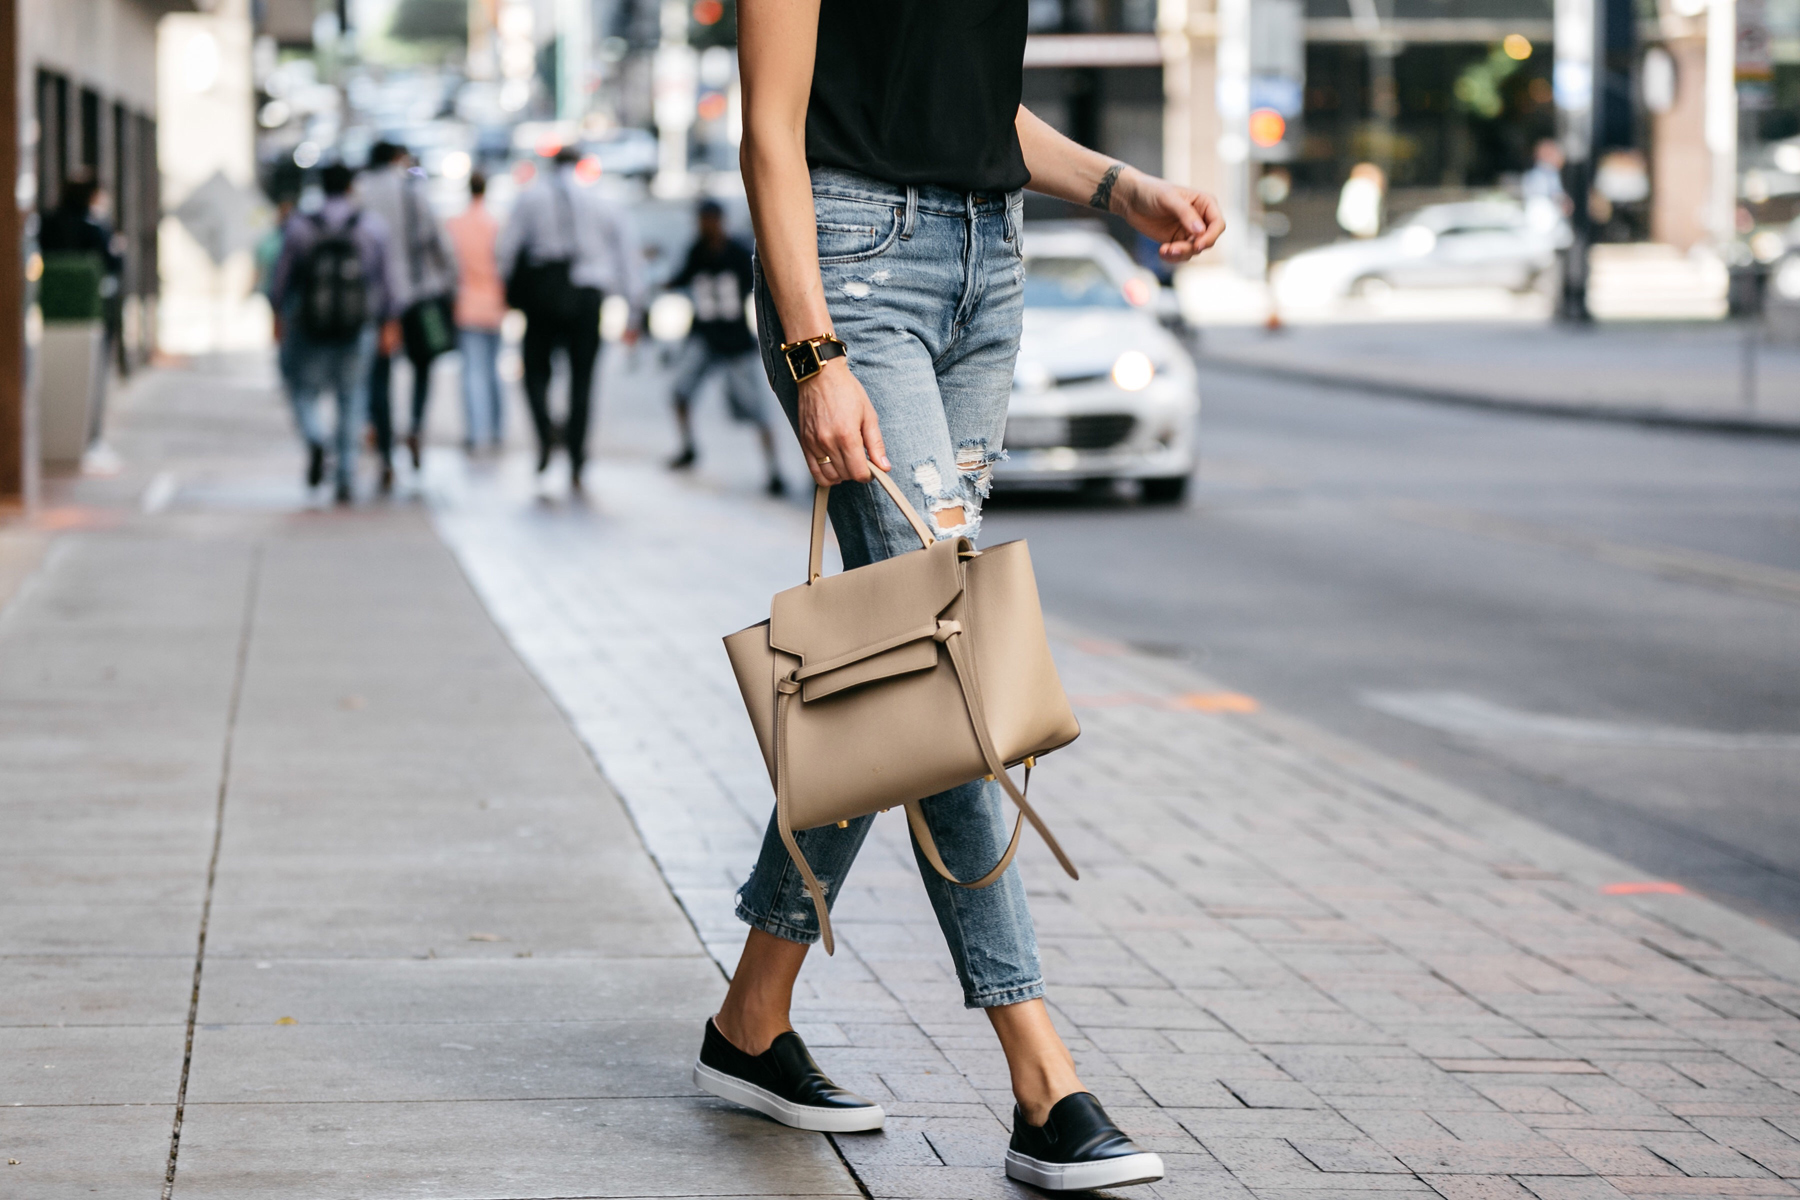 Fashion Jackson, Dallas Blogger, Fashion Blogger, Street Style, Club Monaco Black Cami, Blanknyc Ms Throwback Denim Ripped Relaxed Jeans, Celine Belt Bag, Greats The Wooster Sneaker, Black Slip-On Sneakers